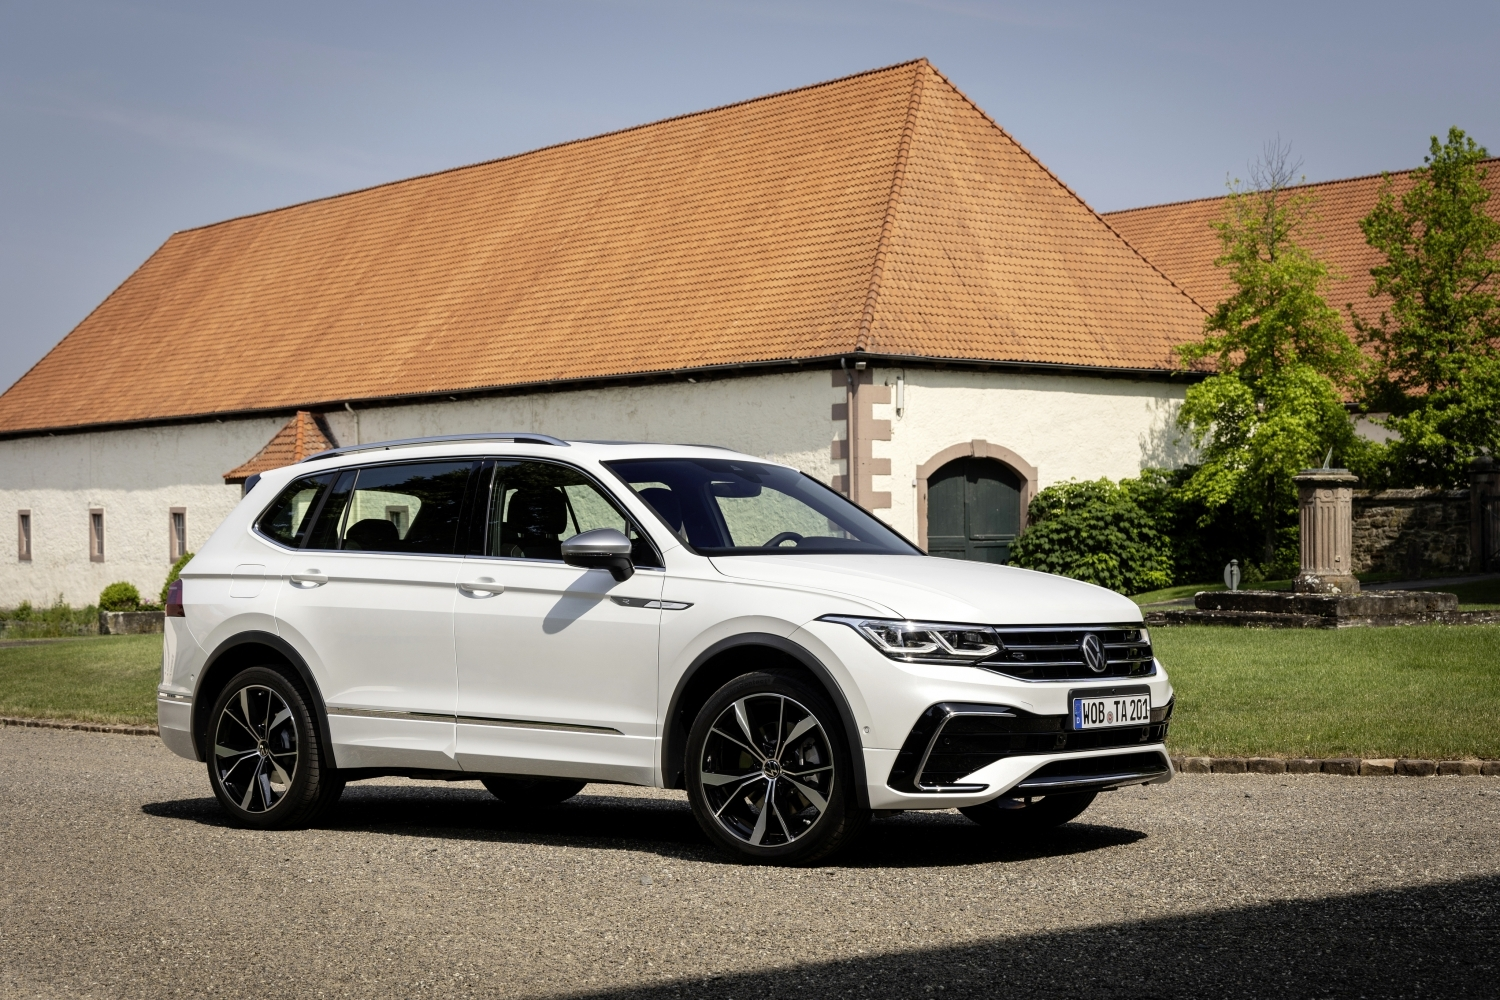 What To Expect From The New Volkswagen Tiguan Allspace